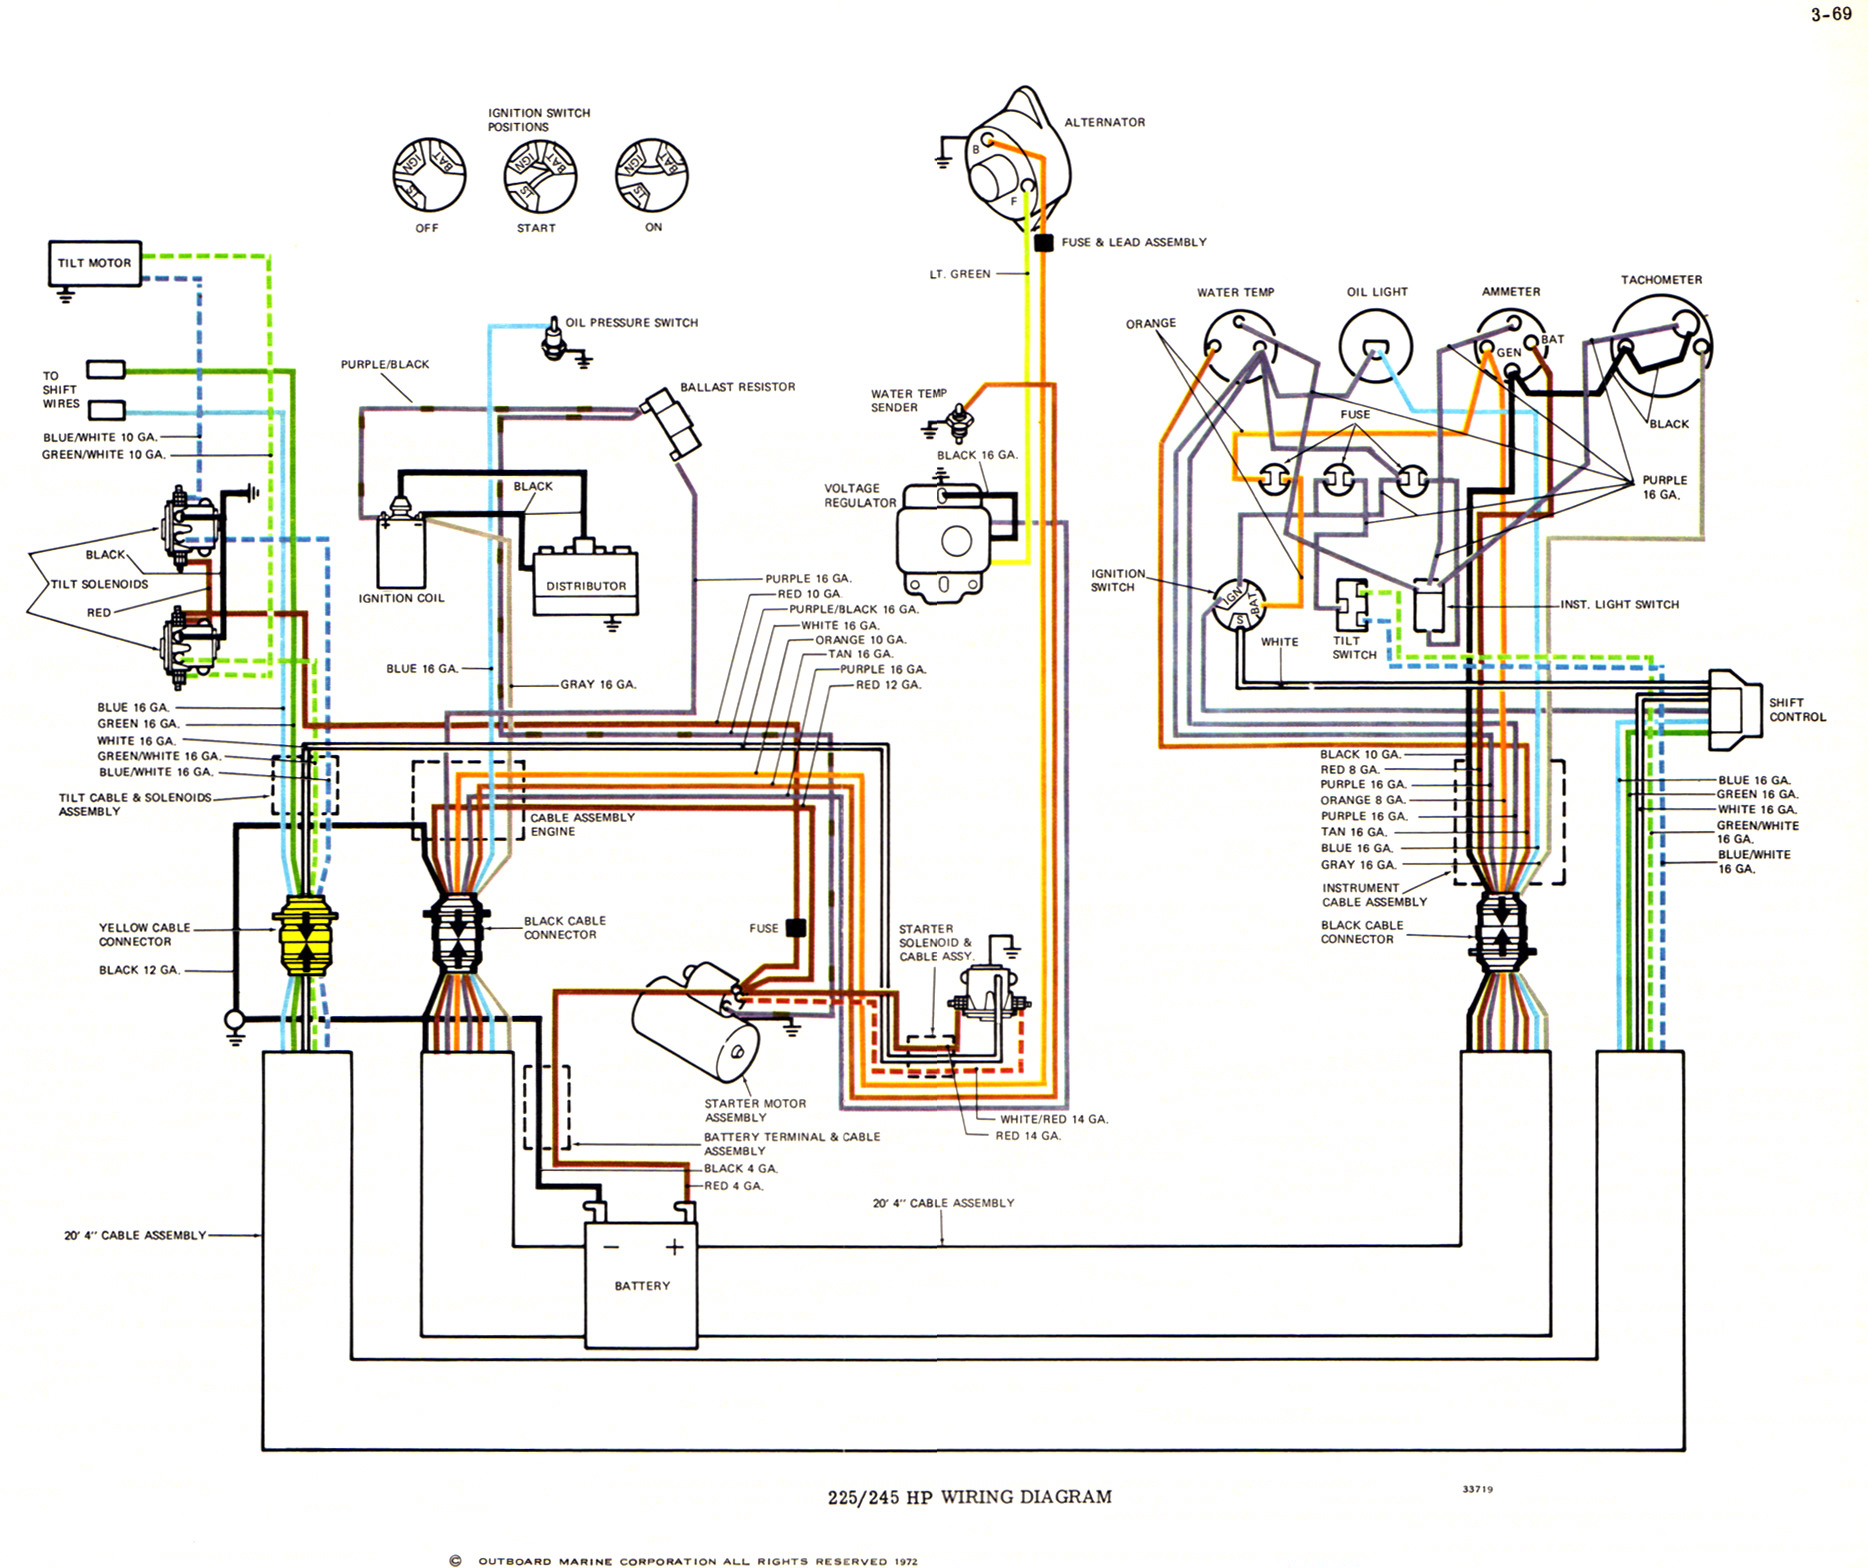 Evinrude 1224 Trolling Motor Wiring Free Download Diagrams Motorguide Wire Diagram Page 1 Iboats Boating Forums 293353 Breathtaking Mercury Thruster Images At